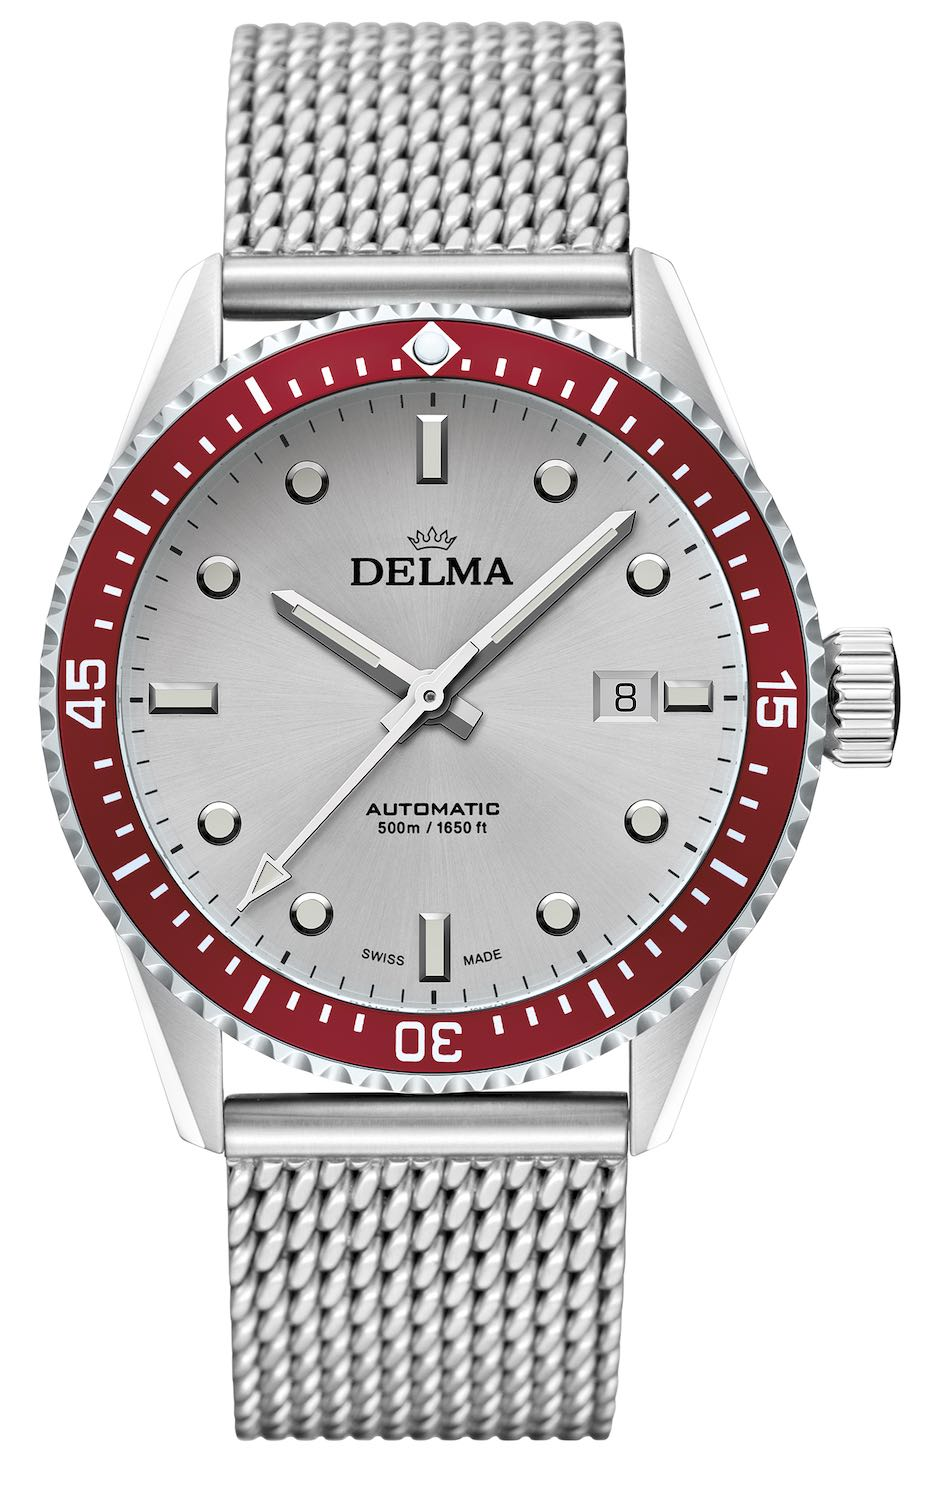 Delma Cayman Automatic - Value Proposition Diver - 1